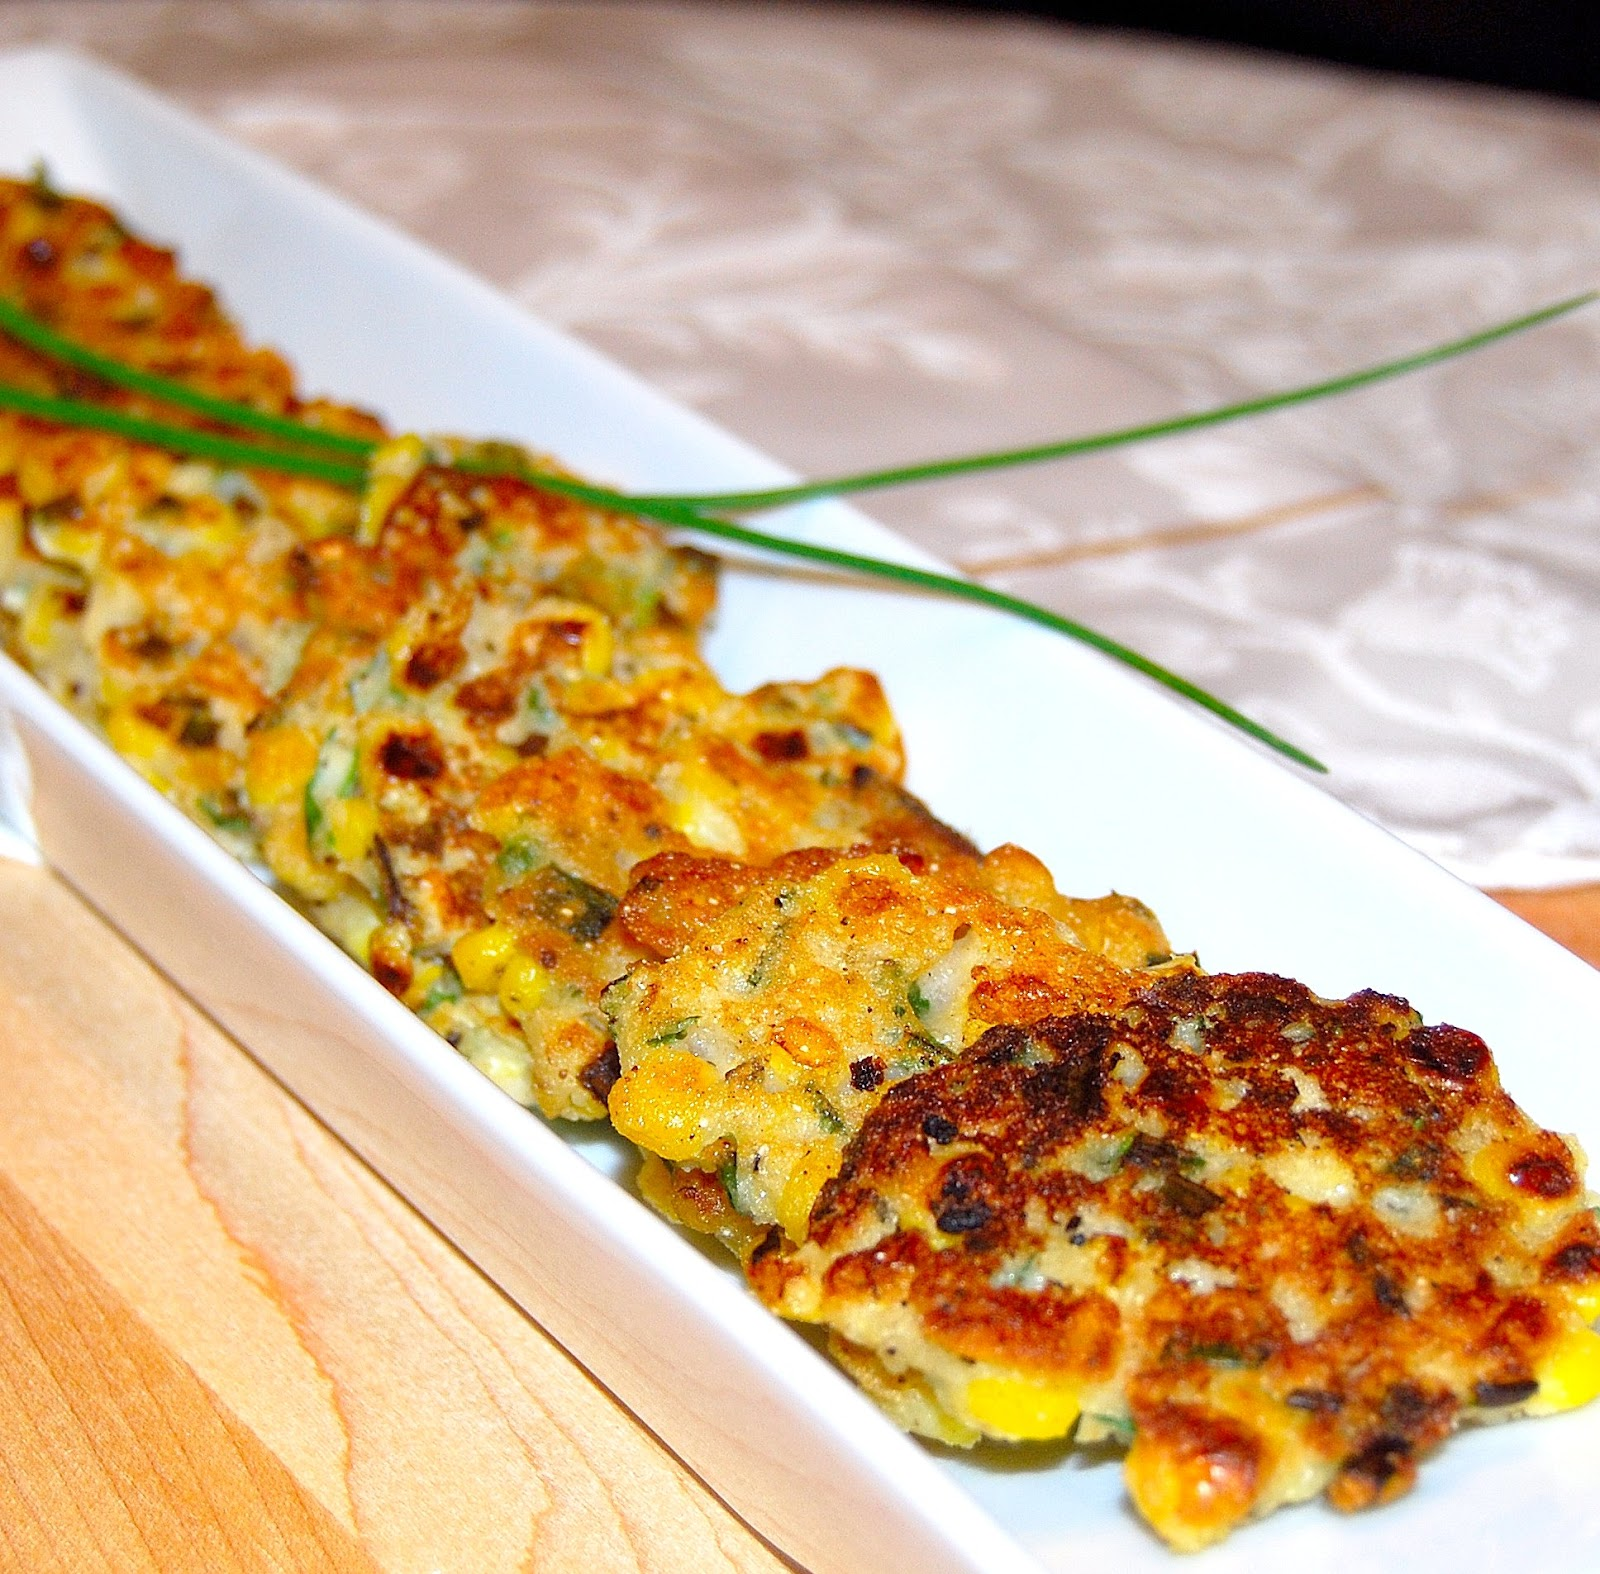 ... corn fritters fat free this recipe for gluten free vegan corn fritters